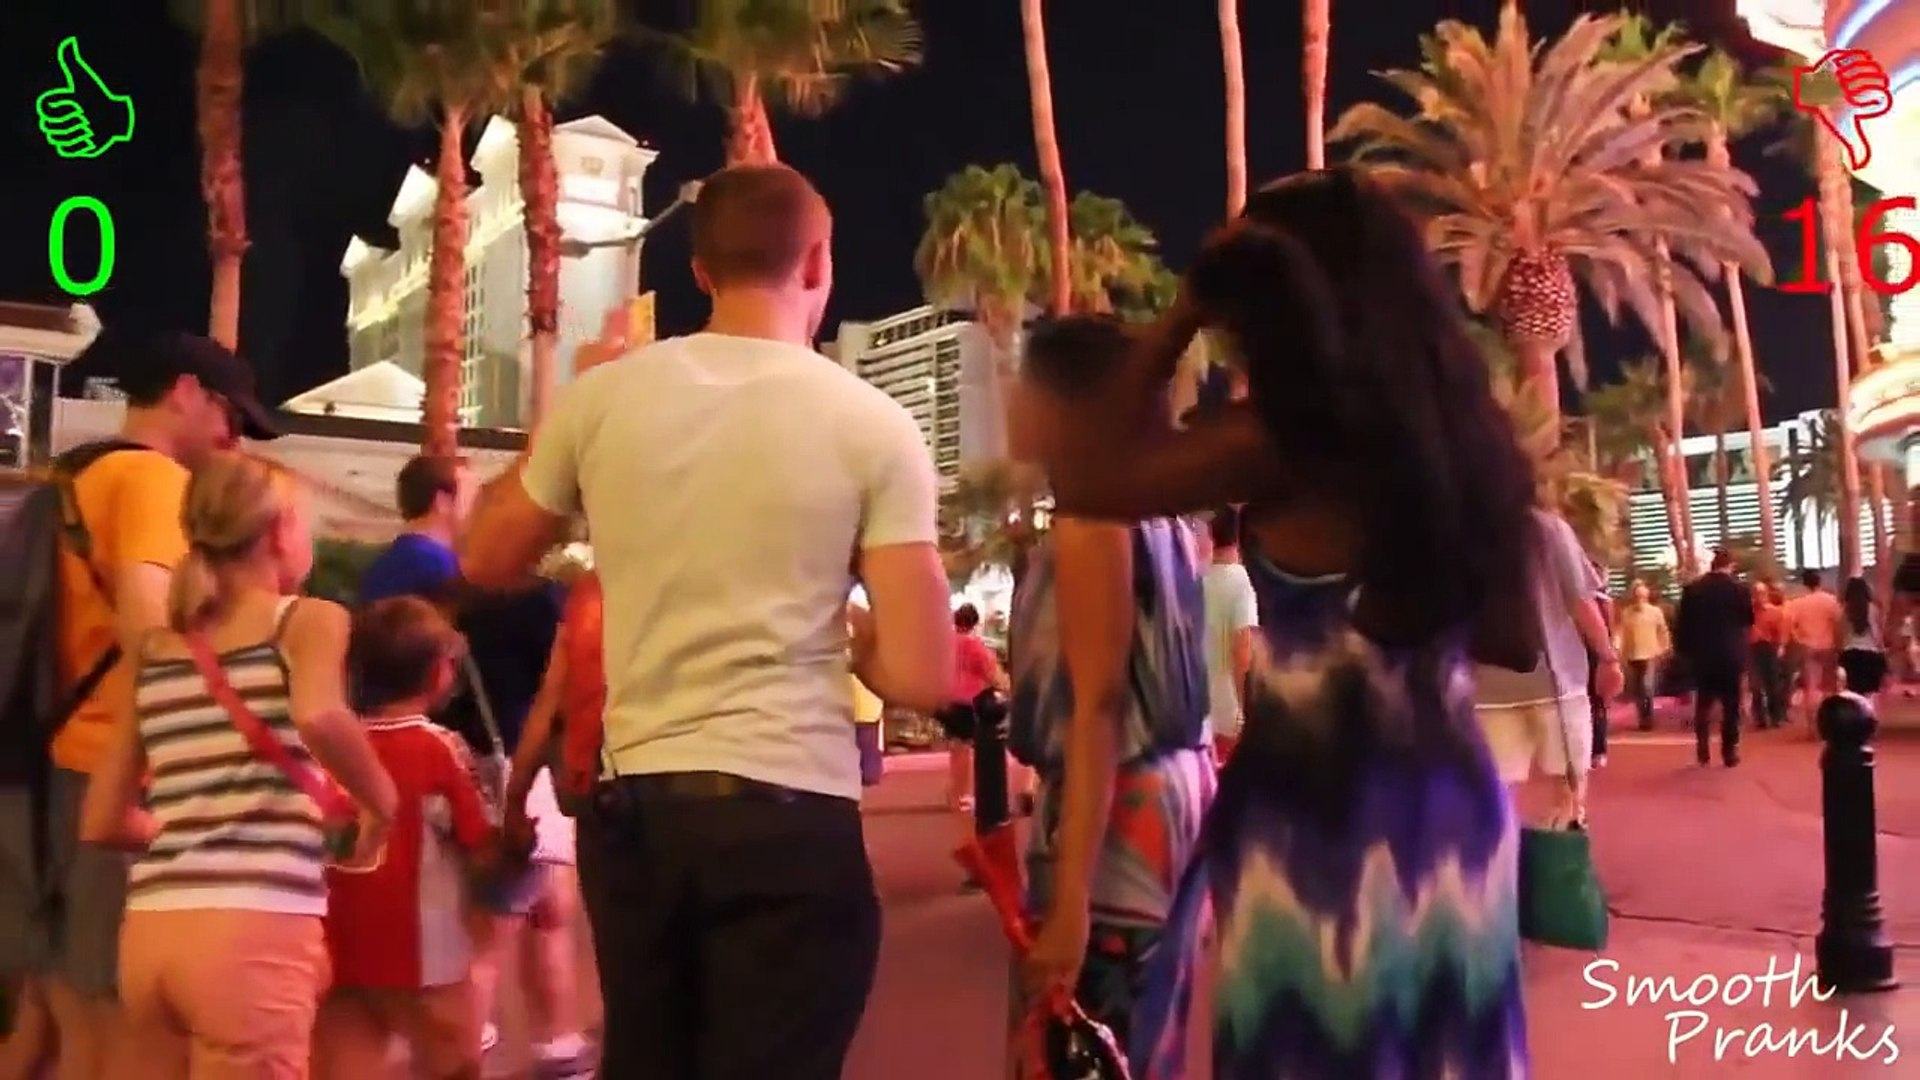 Asking 100 Girls for Sex in Vegas (Social Experiment) How to Have Sex with Strangers Prank